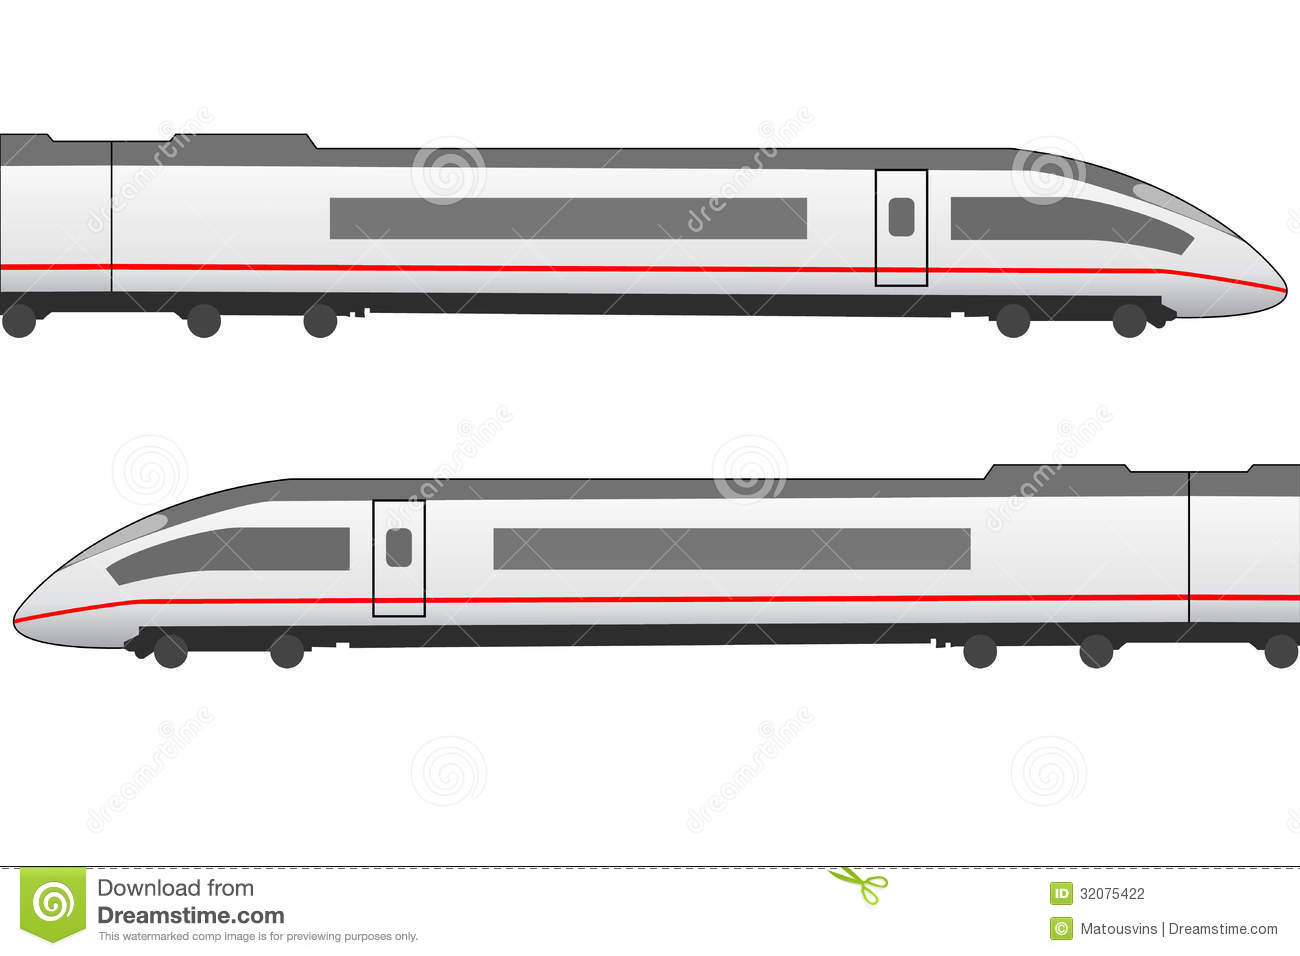 how to draw a train from the side 2pt